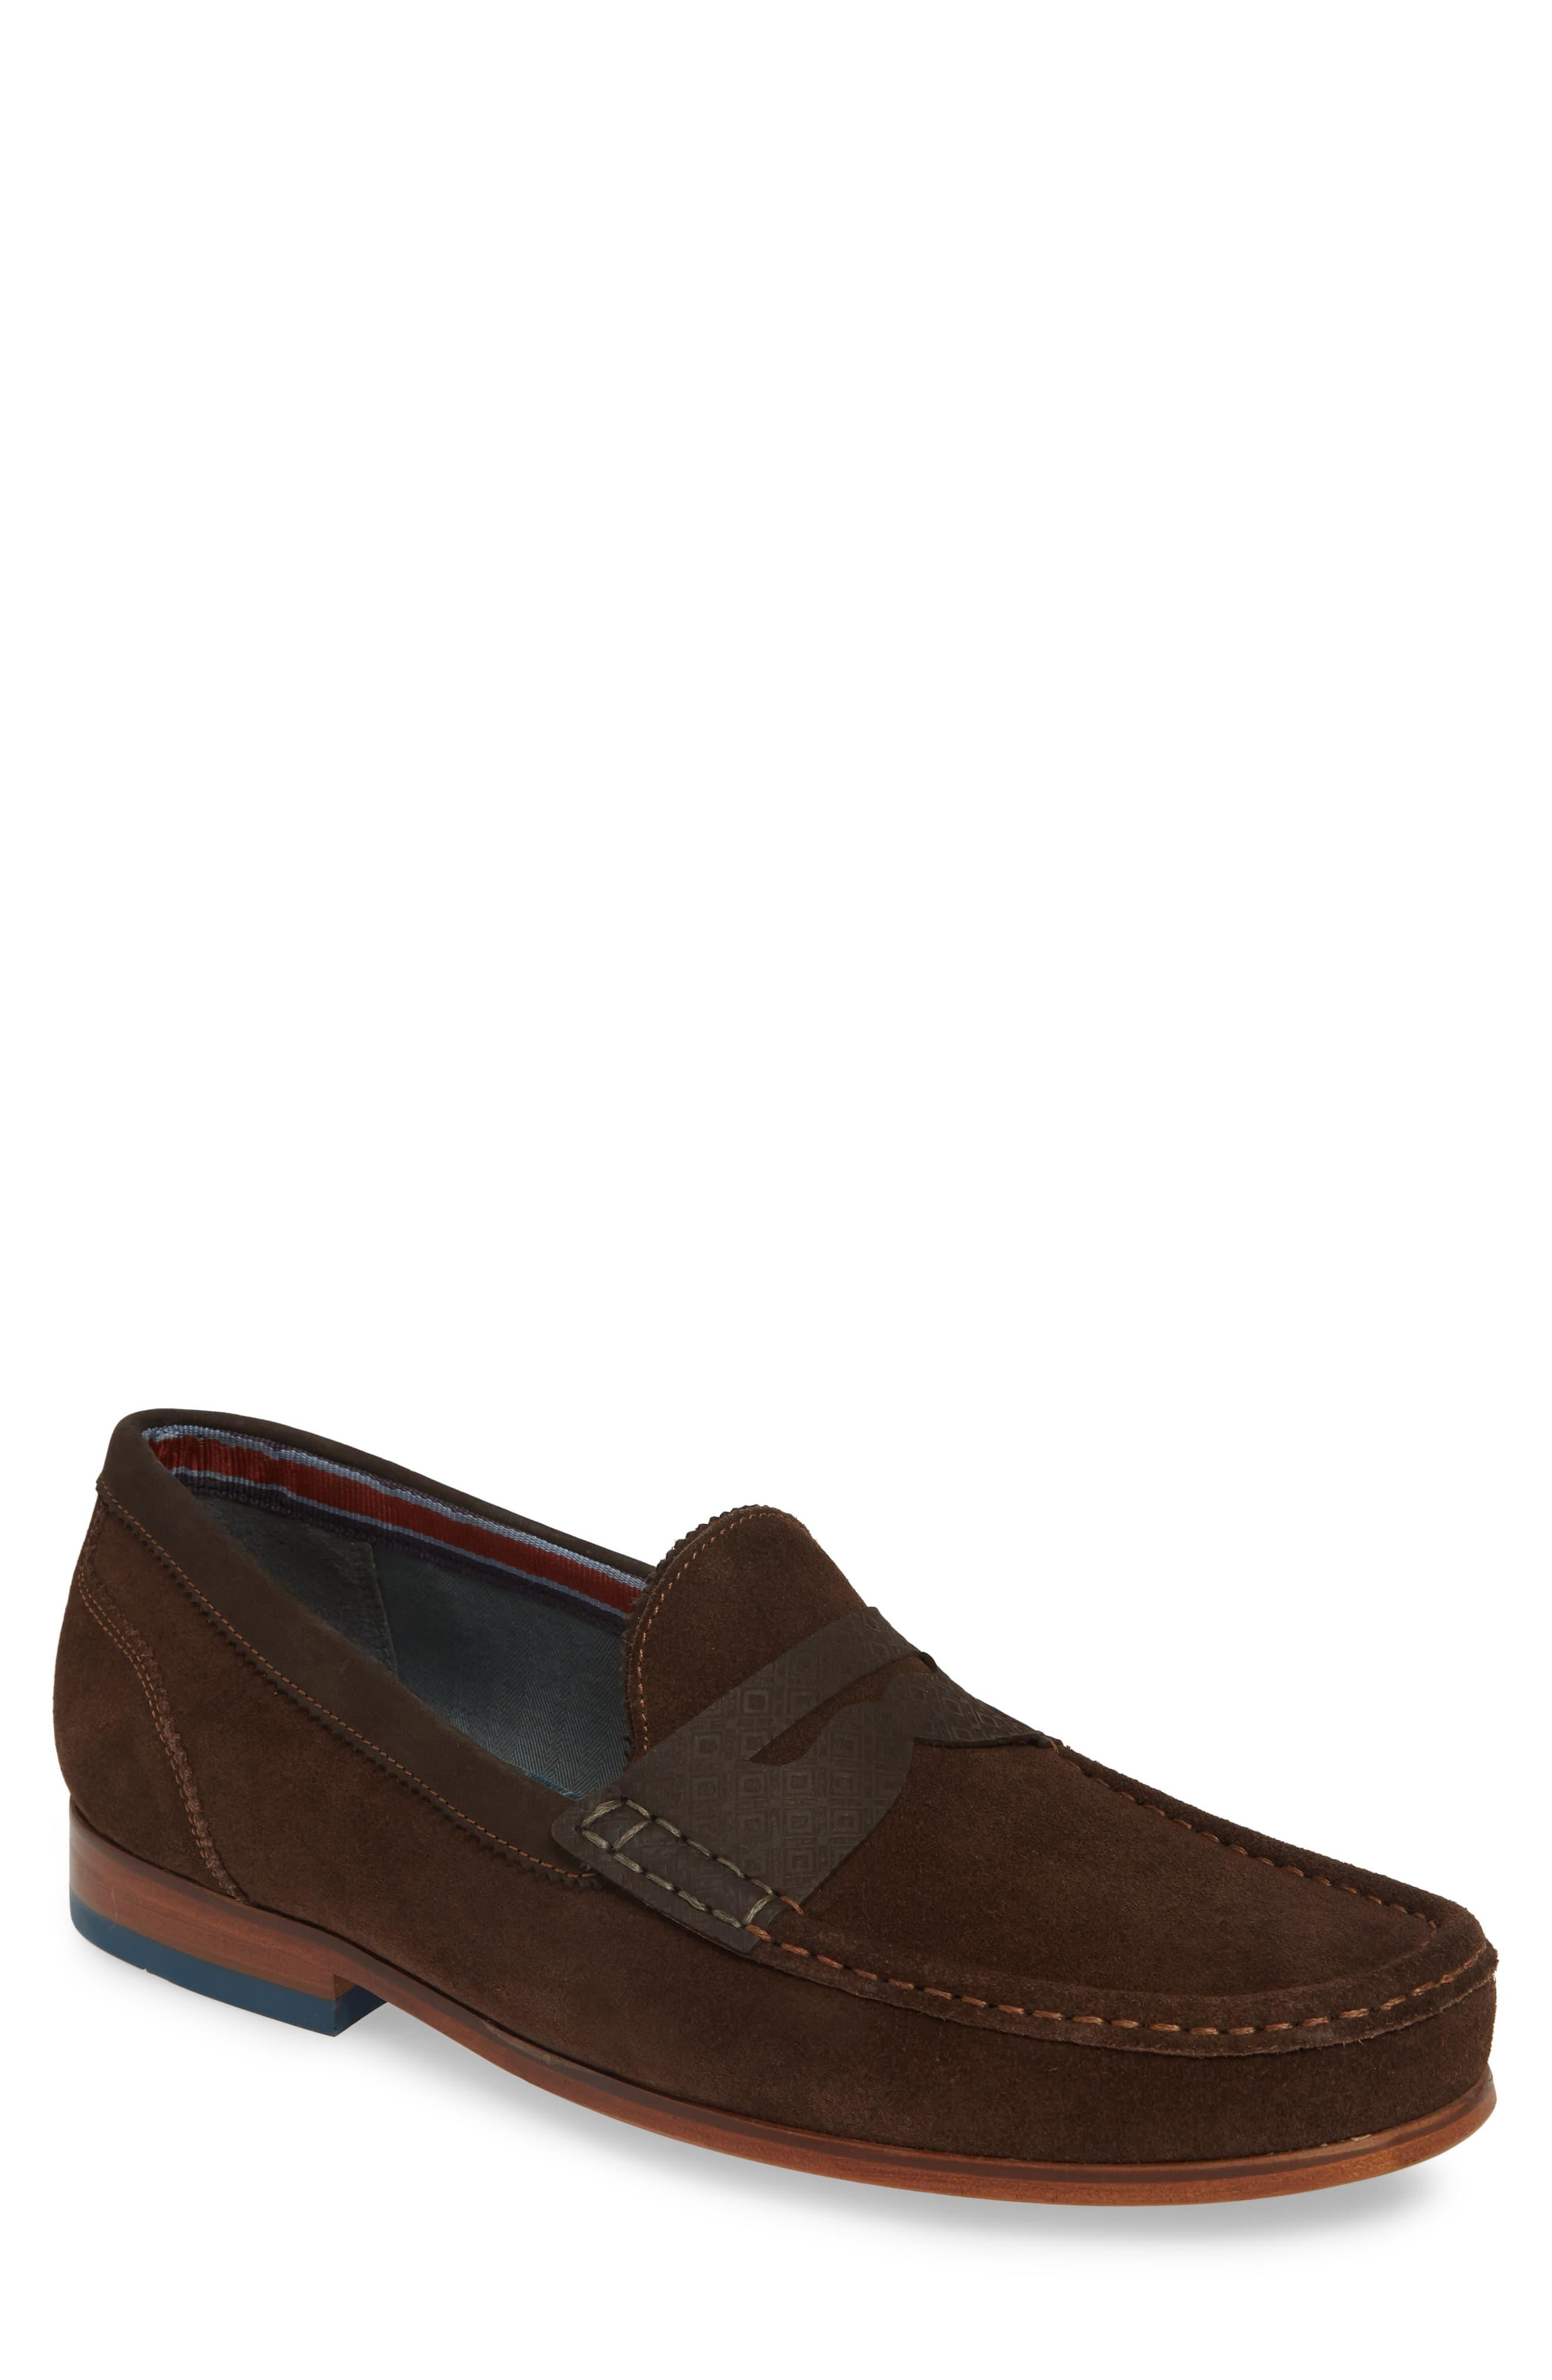 Ted Baker Xapon Penny Loafer in Brown for Men - Lyst